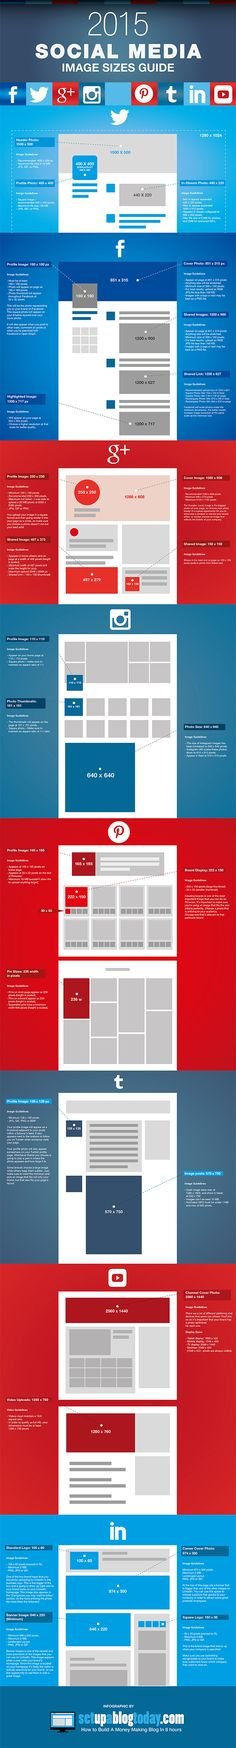 Create Perfect Social Media Profiles and Posts With This Image Size Guide #Infographic